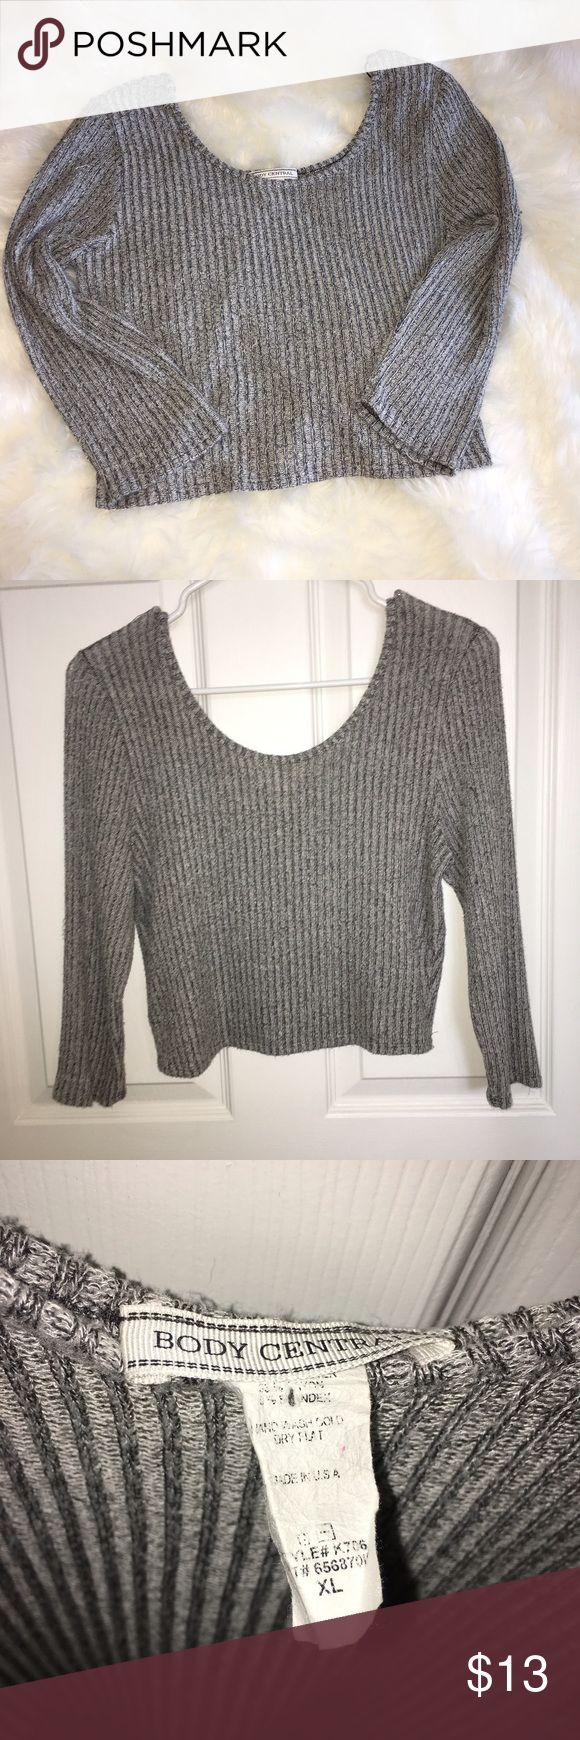 Body Central longsleeve crop top size XL Gray longsleeve crop top, soft sweater material, lightweight, size XL. Good condition, has some pilling. Body Central Tops Crop Tops